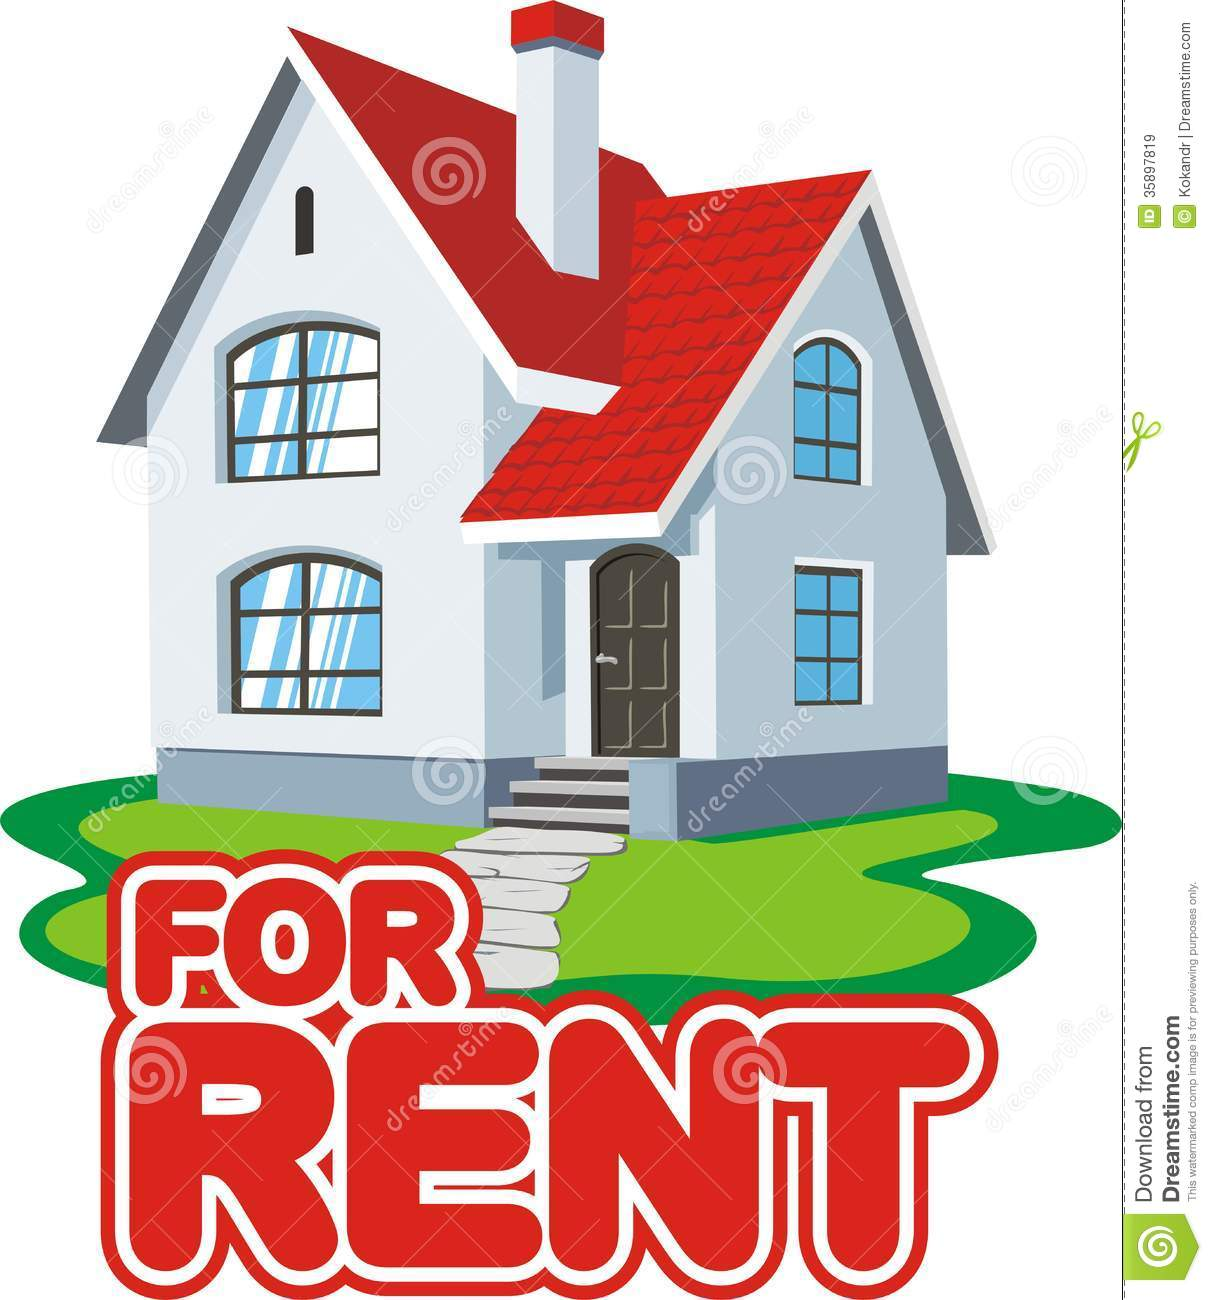 House For Rent Stock Vector. Illustration Of Realtor